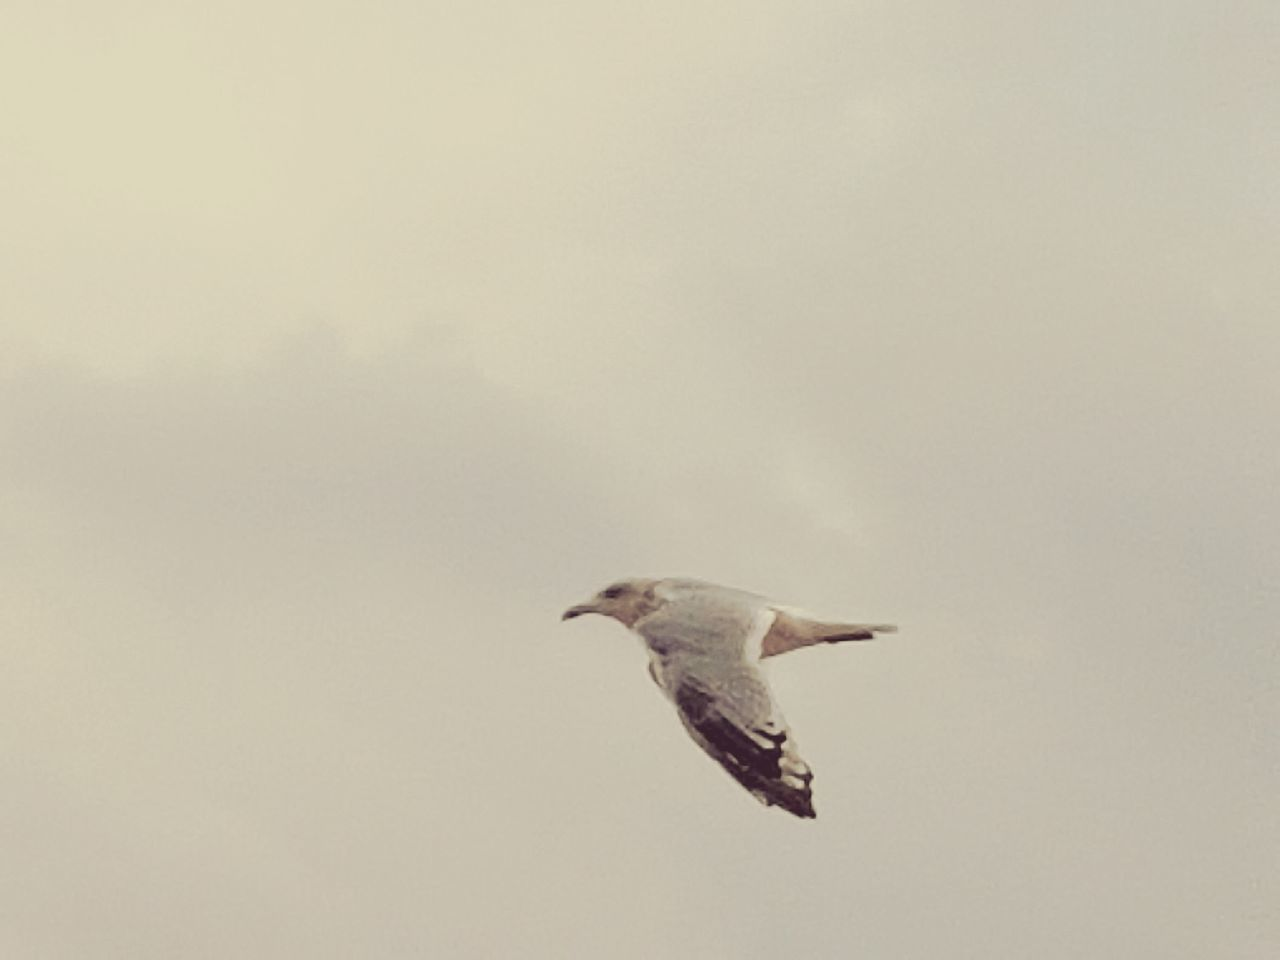 Flying Bird Spread Wings Mid-air One Animal Animal Wildlife Animals In The Wild Freedom Animal Themes Nature Motion No People Outdoors Day Sky